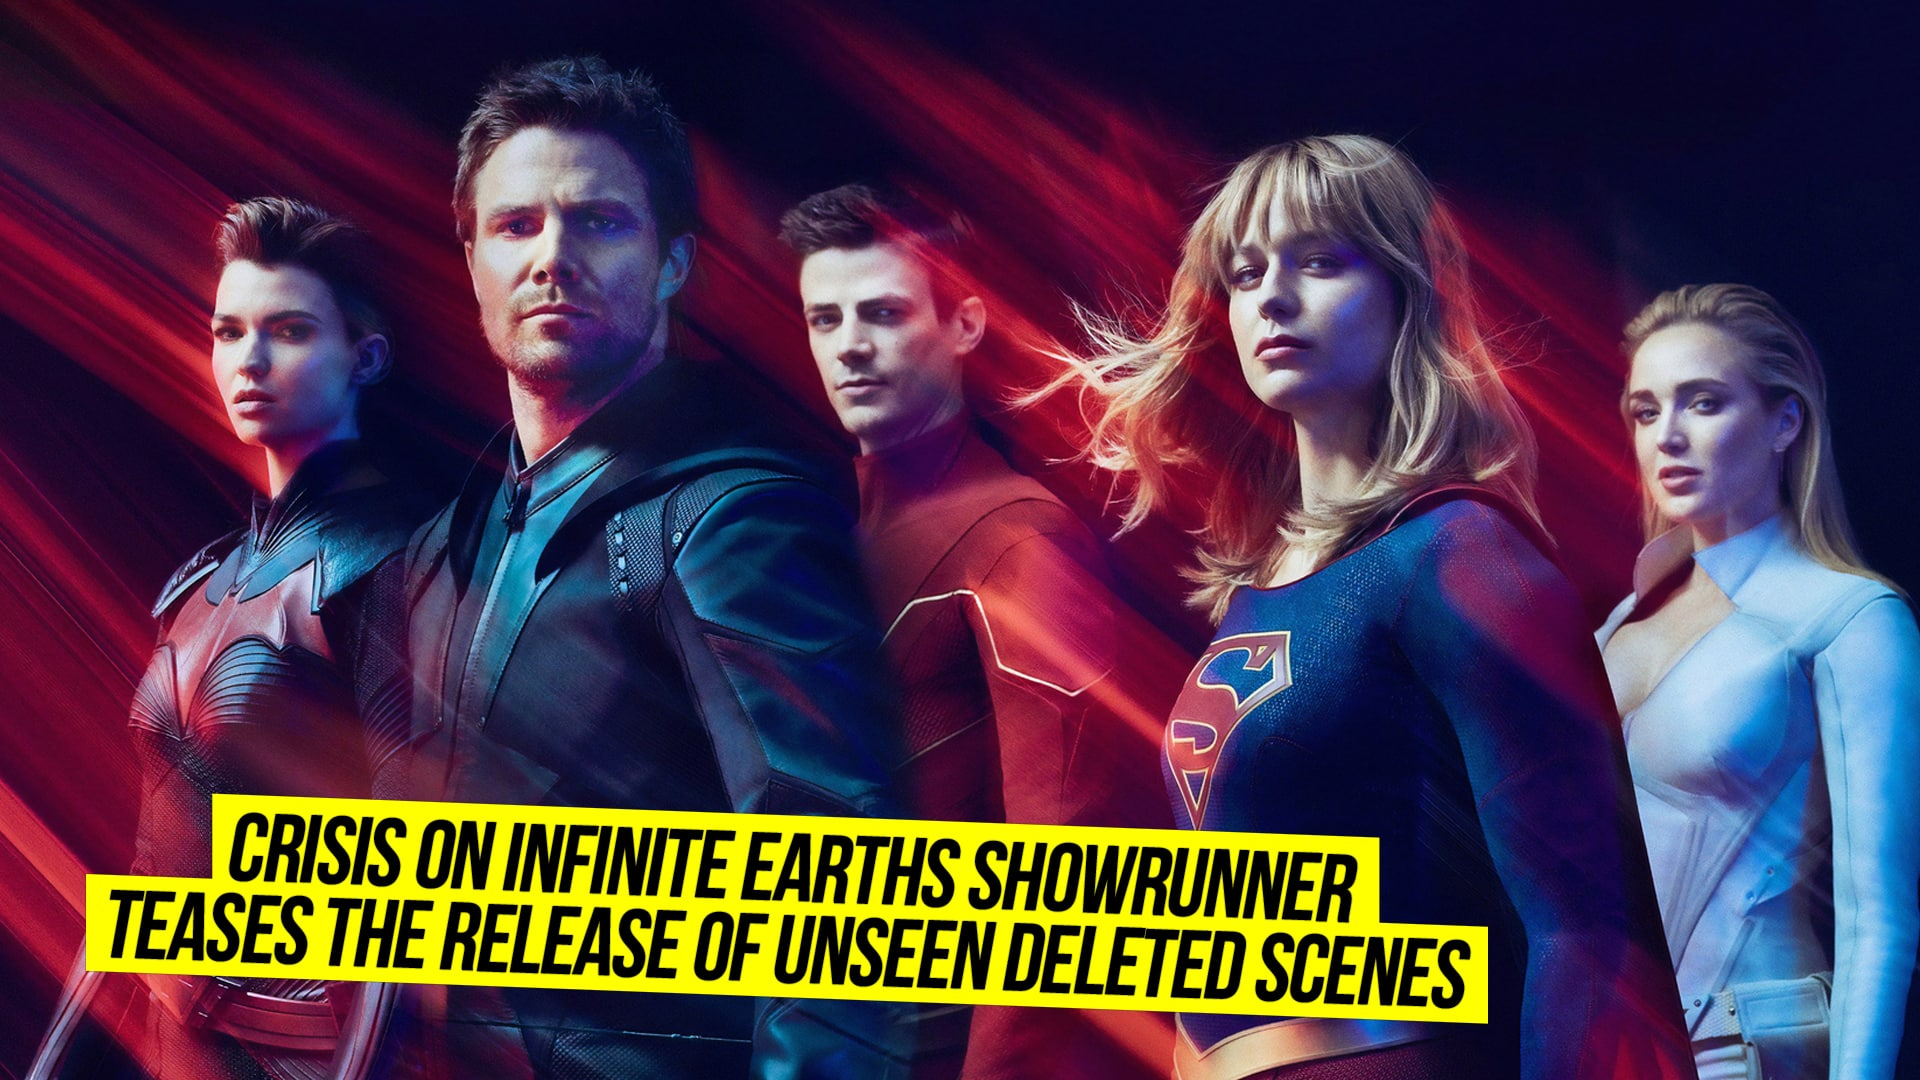 Crisis On Infinite Earths Showrunner Teases The Release Of Unseen Deleted Scenes